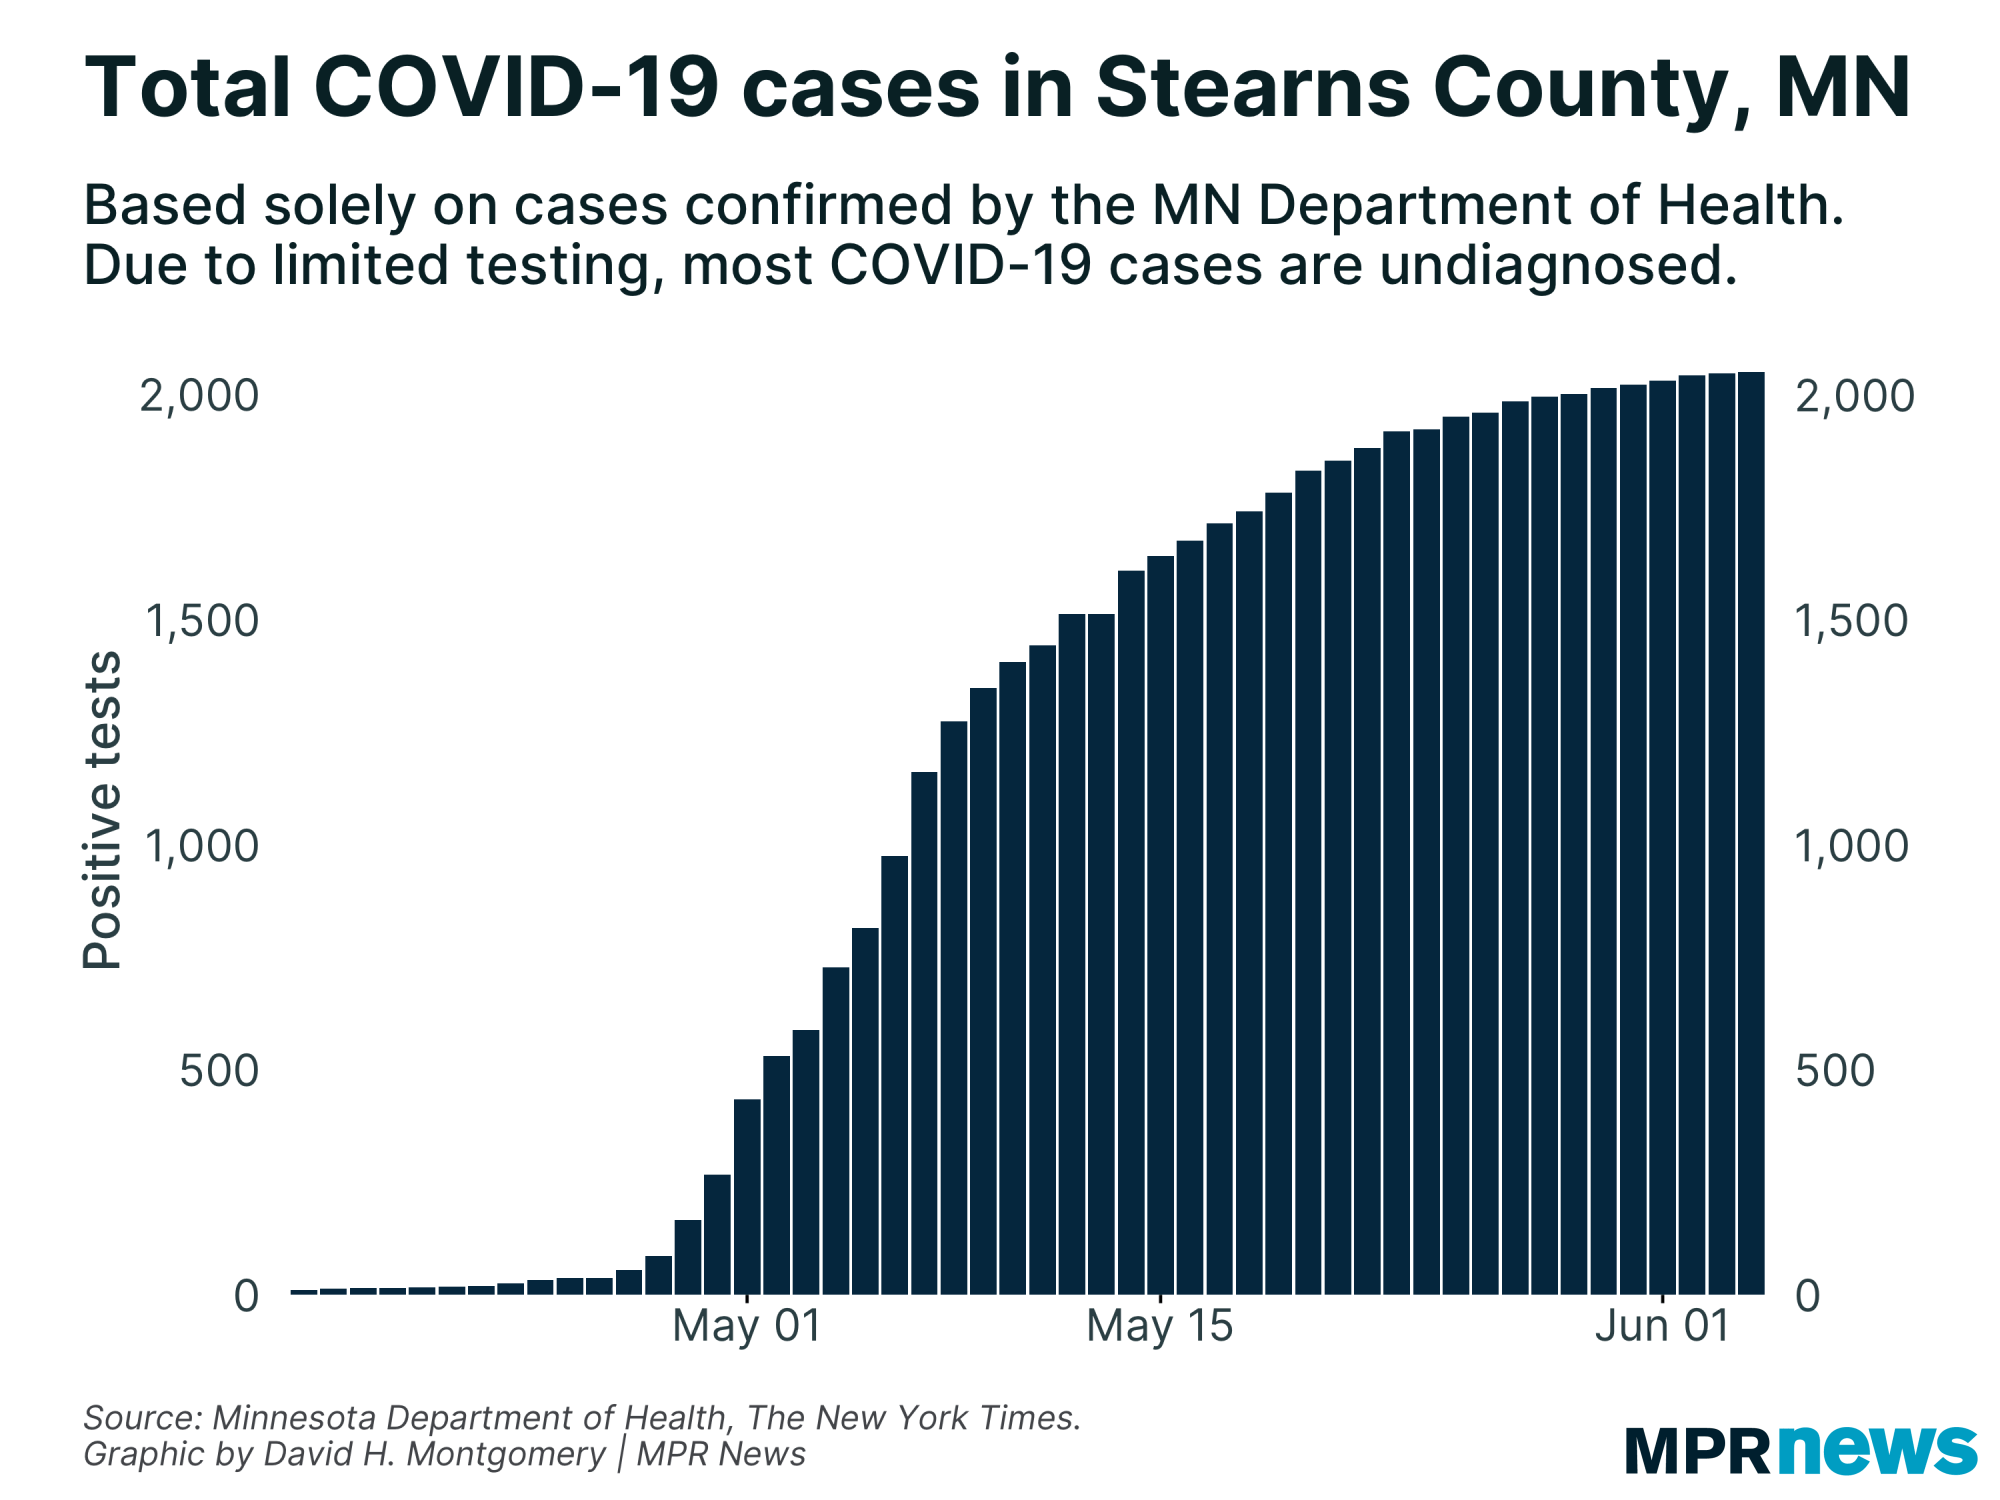 Confirmed COVID-19 cases in Stearns County, MN.